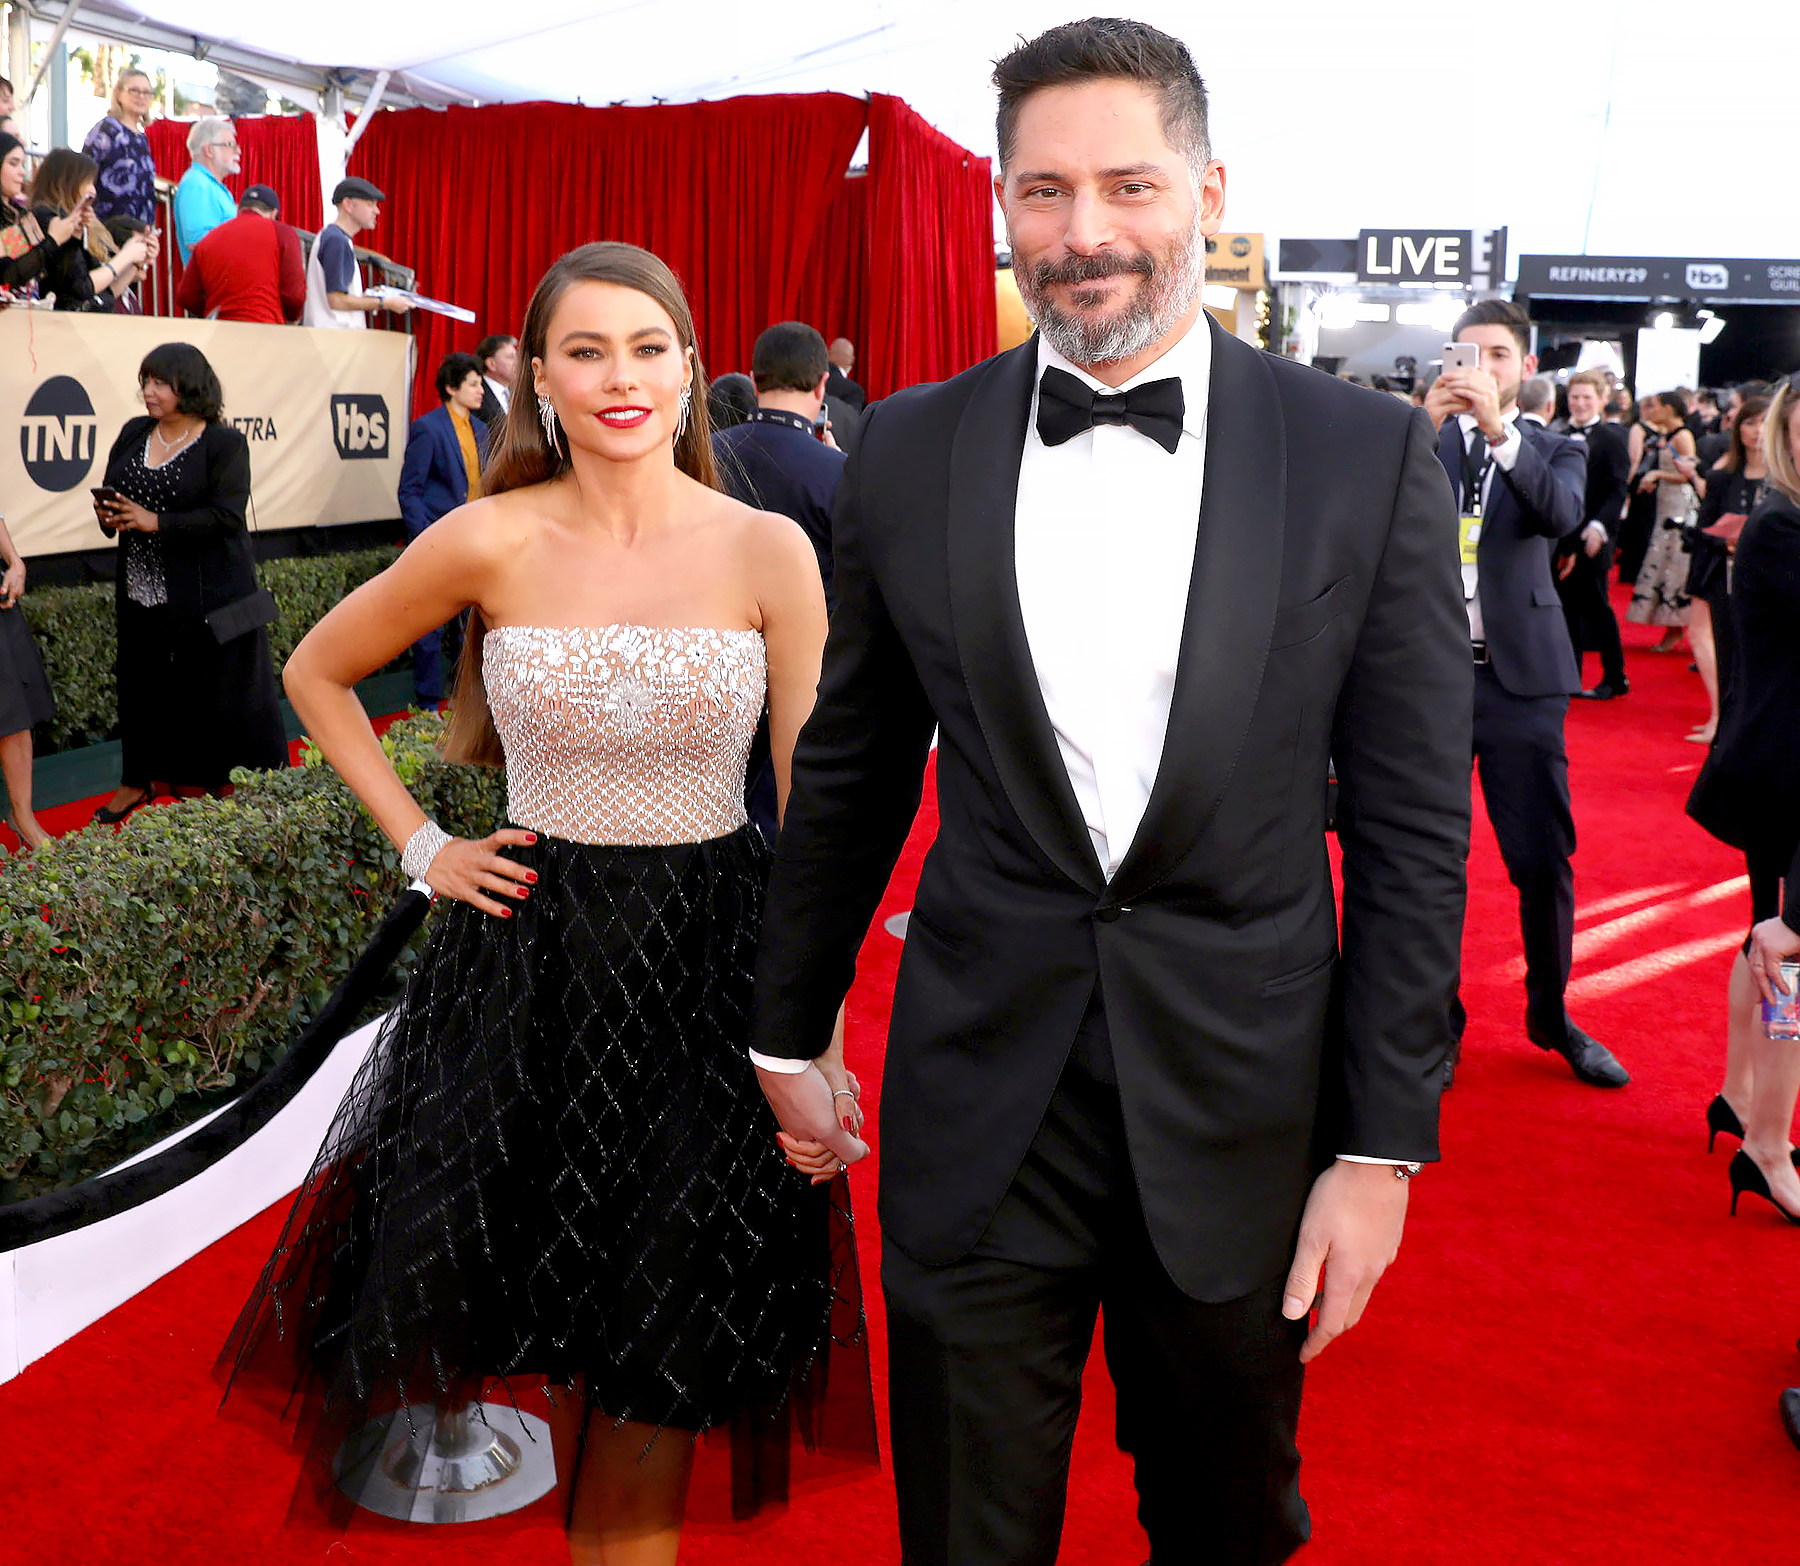 Sofia Vergara and Joe Manganiello arrive at the 23rd Annual Screen Actors Guild Awards.